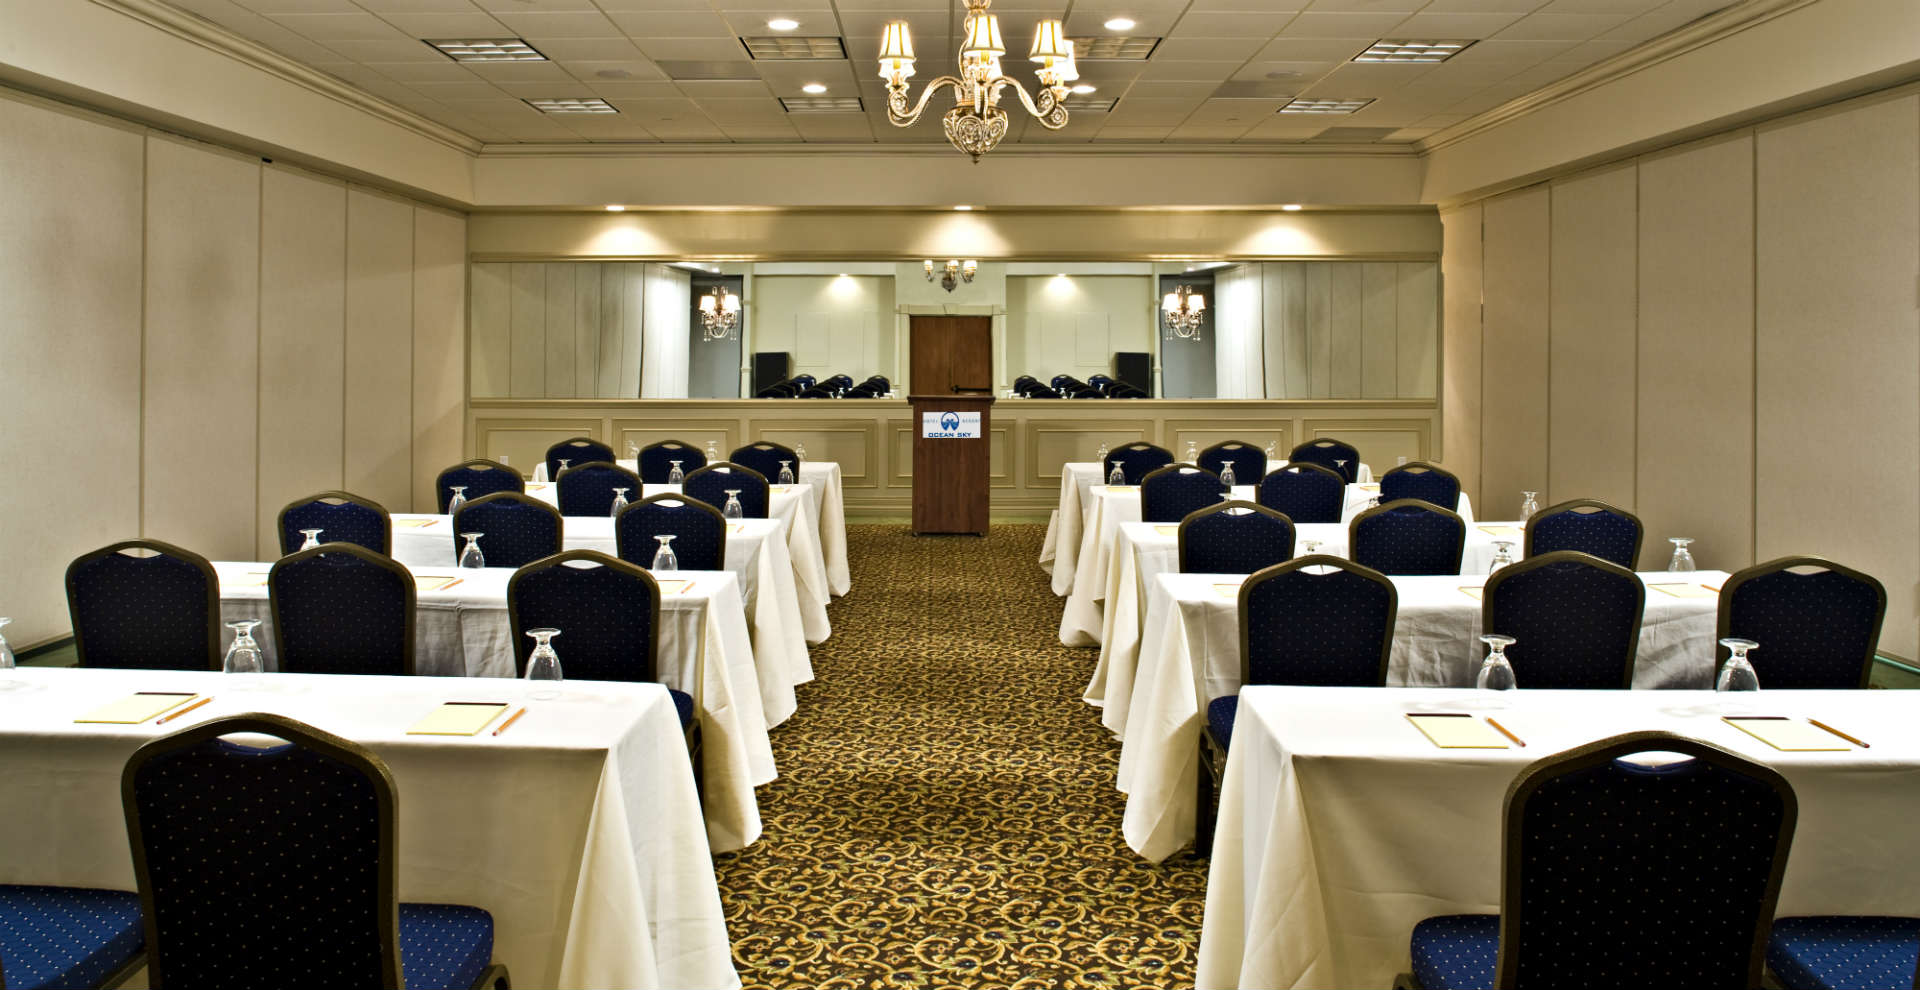 Meeting Facilities at Ocean Sky Hotel Resort in Florida